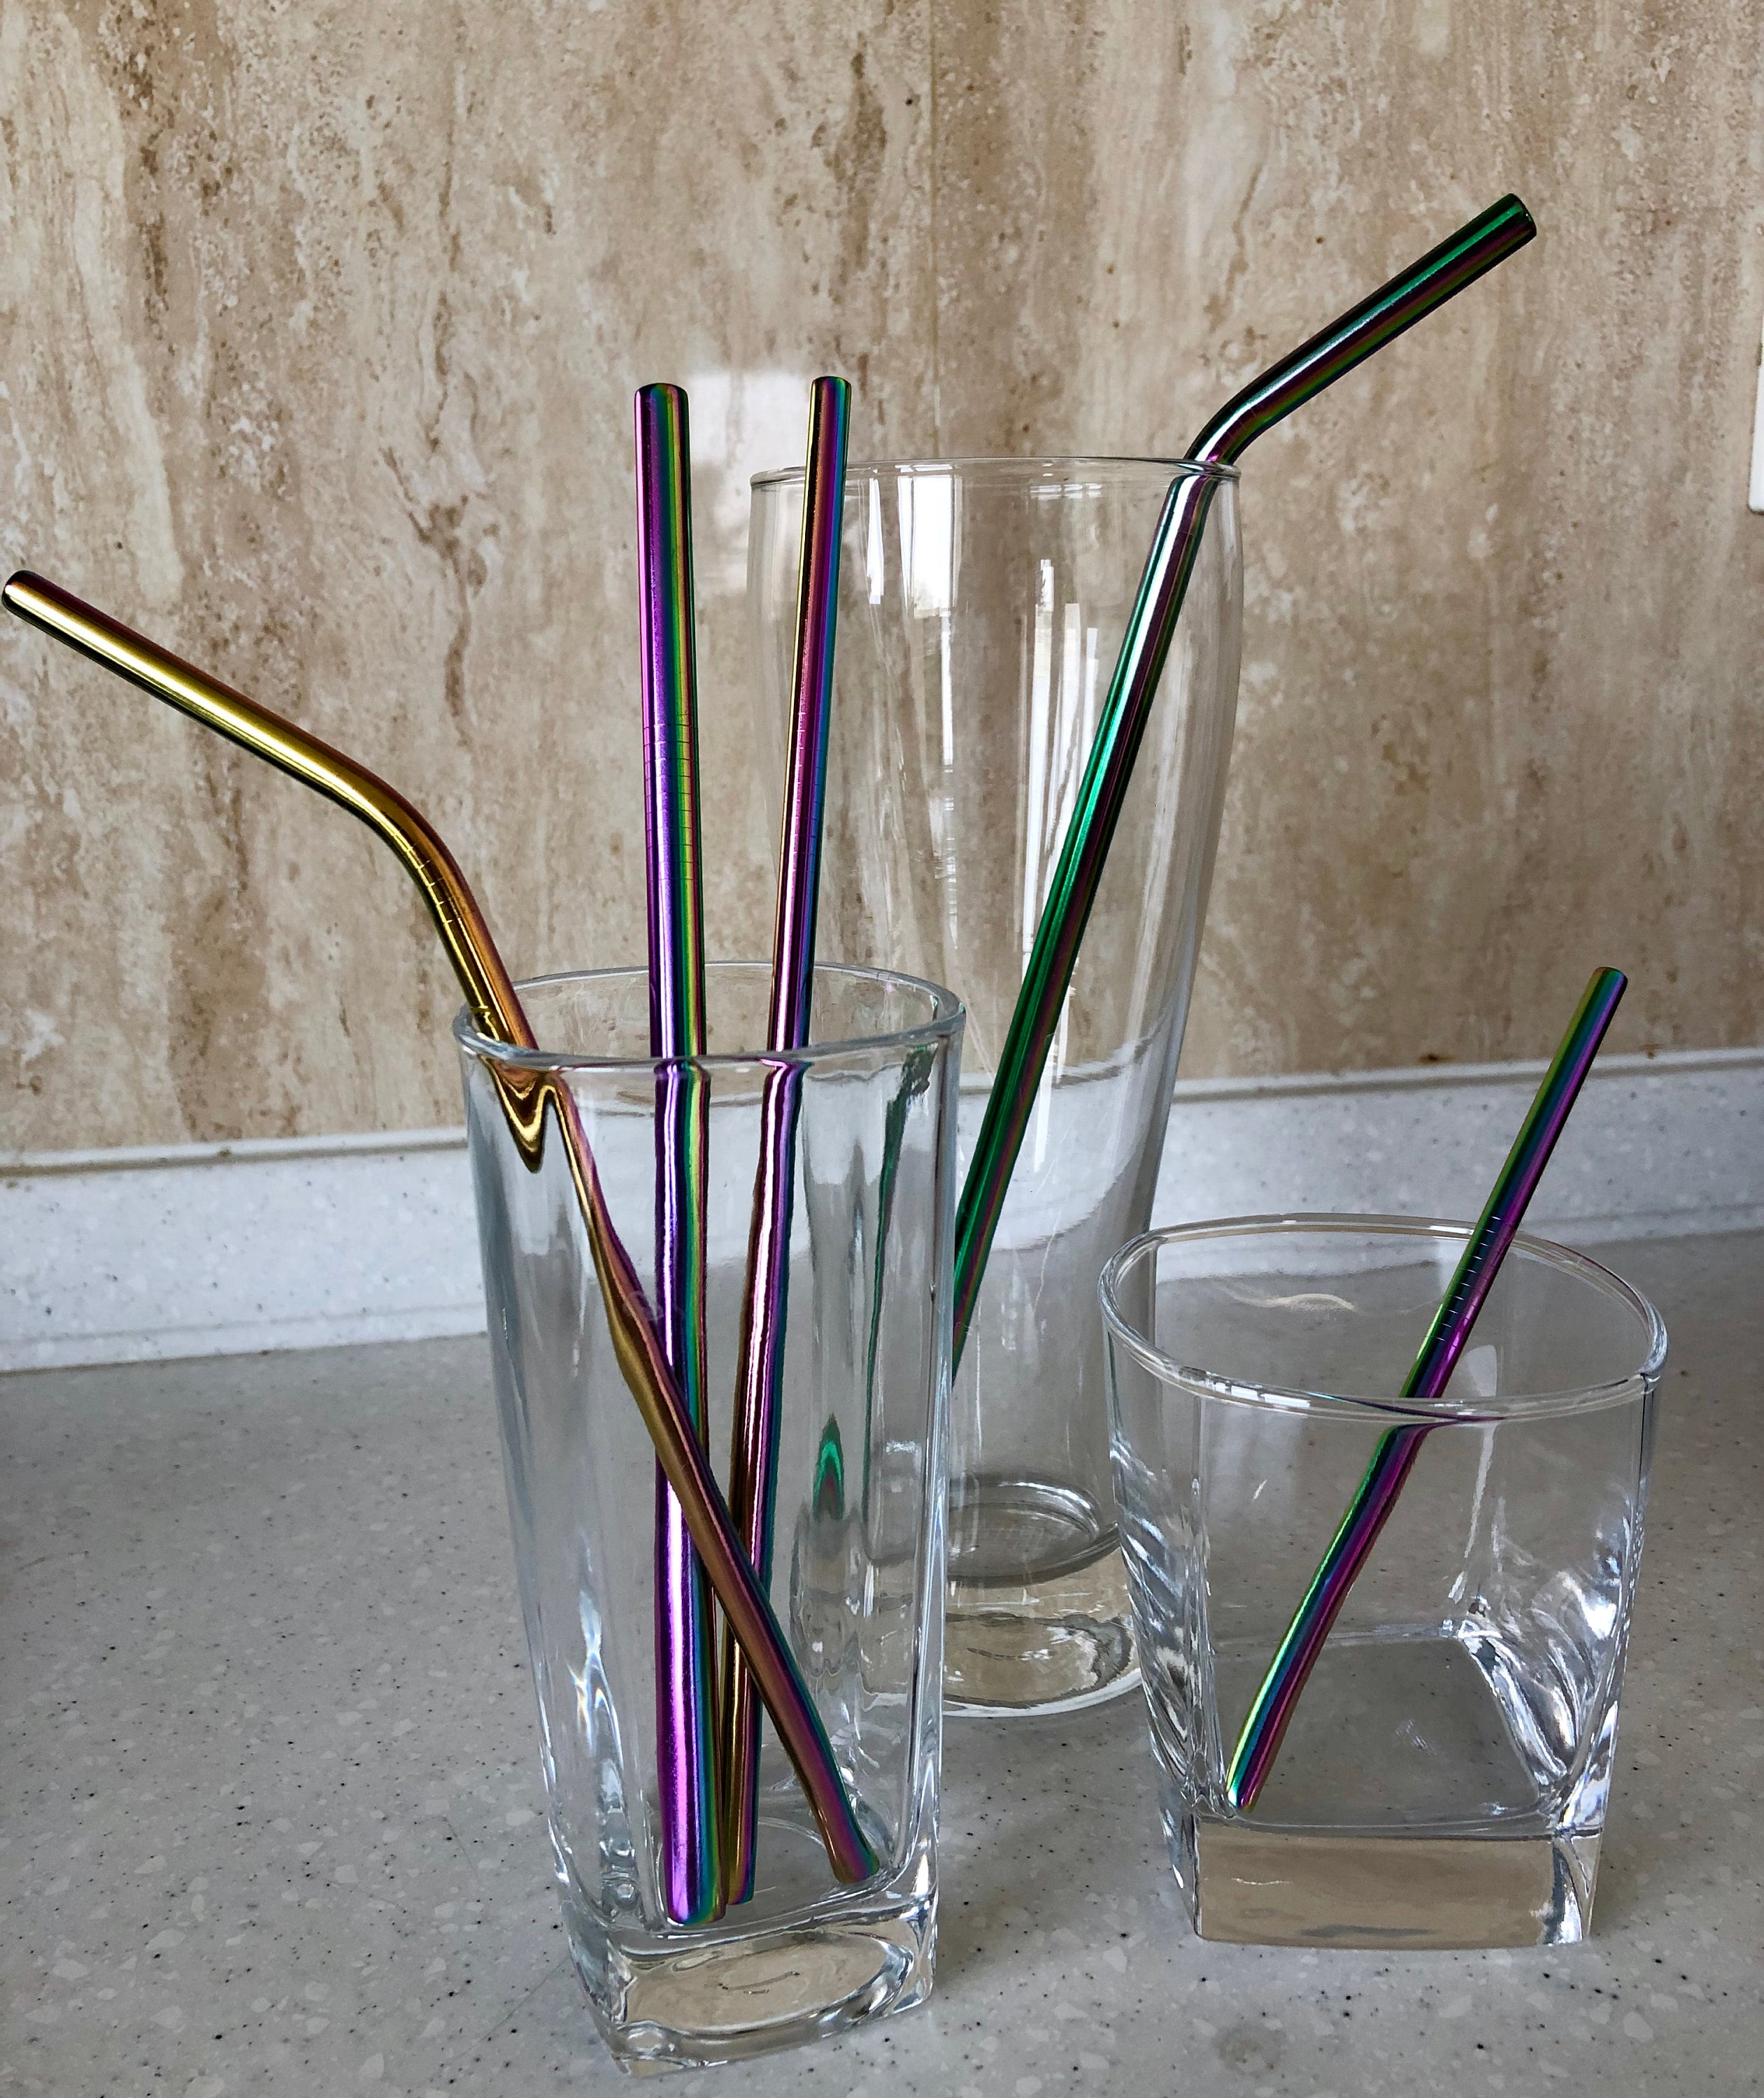 FREE SHIPPING to US - Stainless Steel Straws - Metal Straws